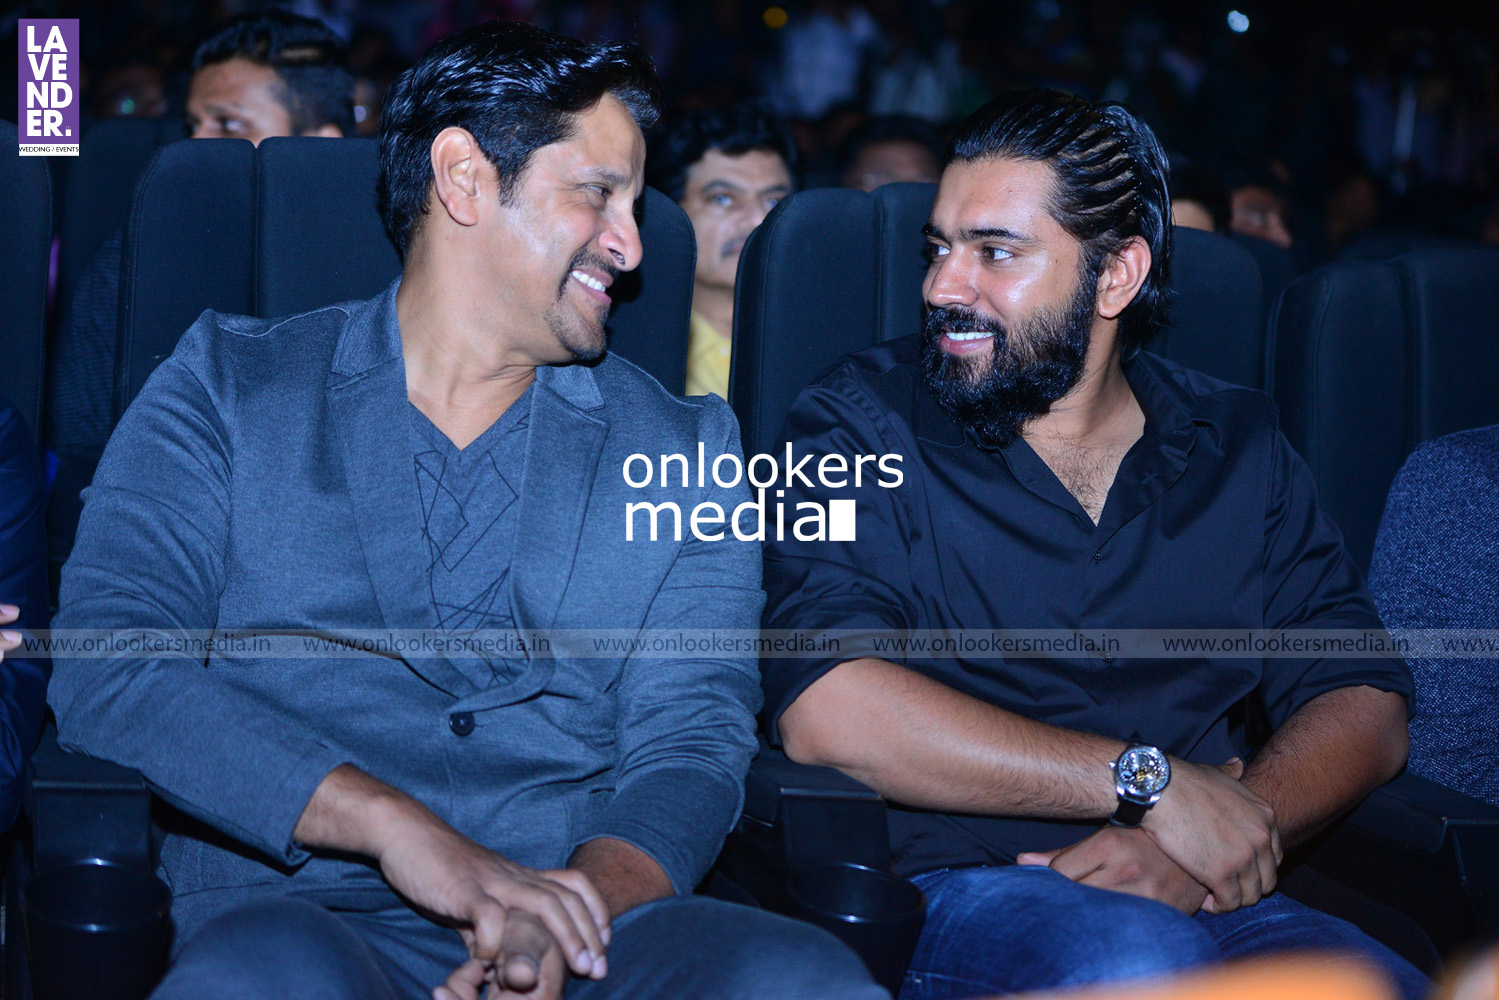 http://onlookersmedia.in/wp-content/uploads/2016/08/Iru-Mugan-Audio-Launch-Stills-Photos-Vikram-Nivin-Pauly-40.jpg